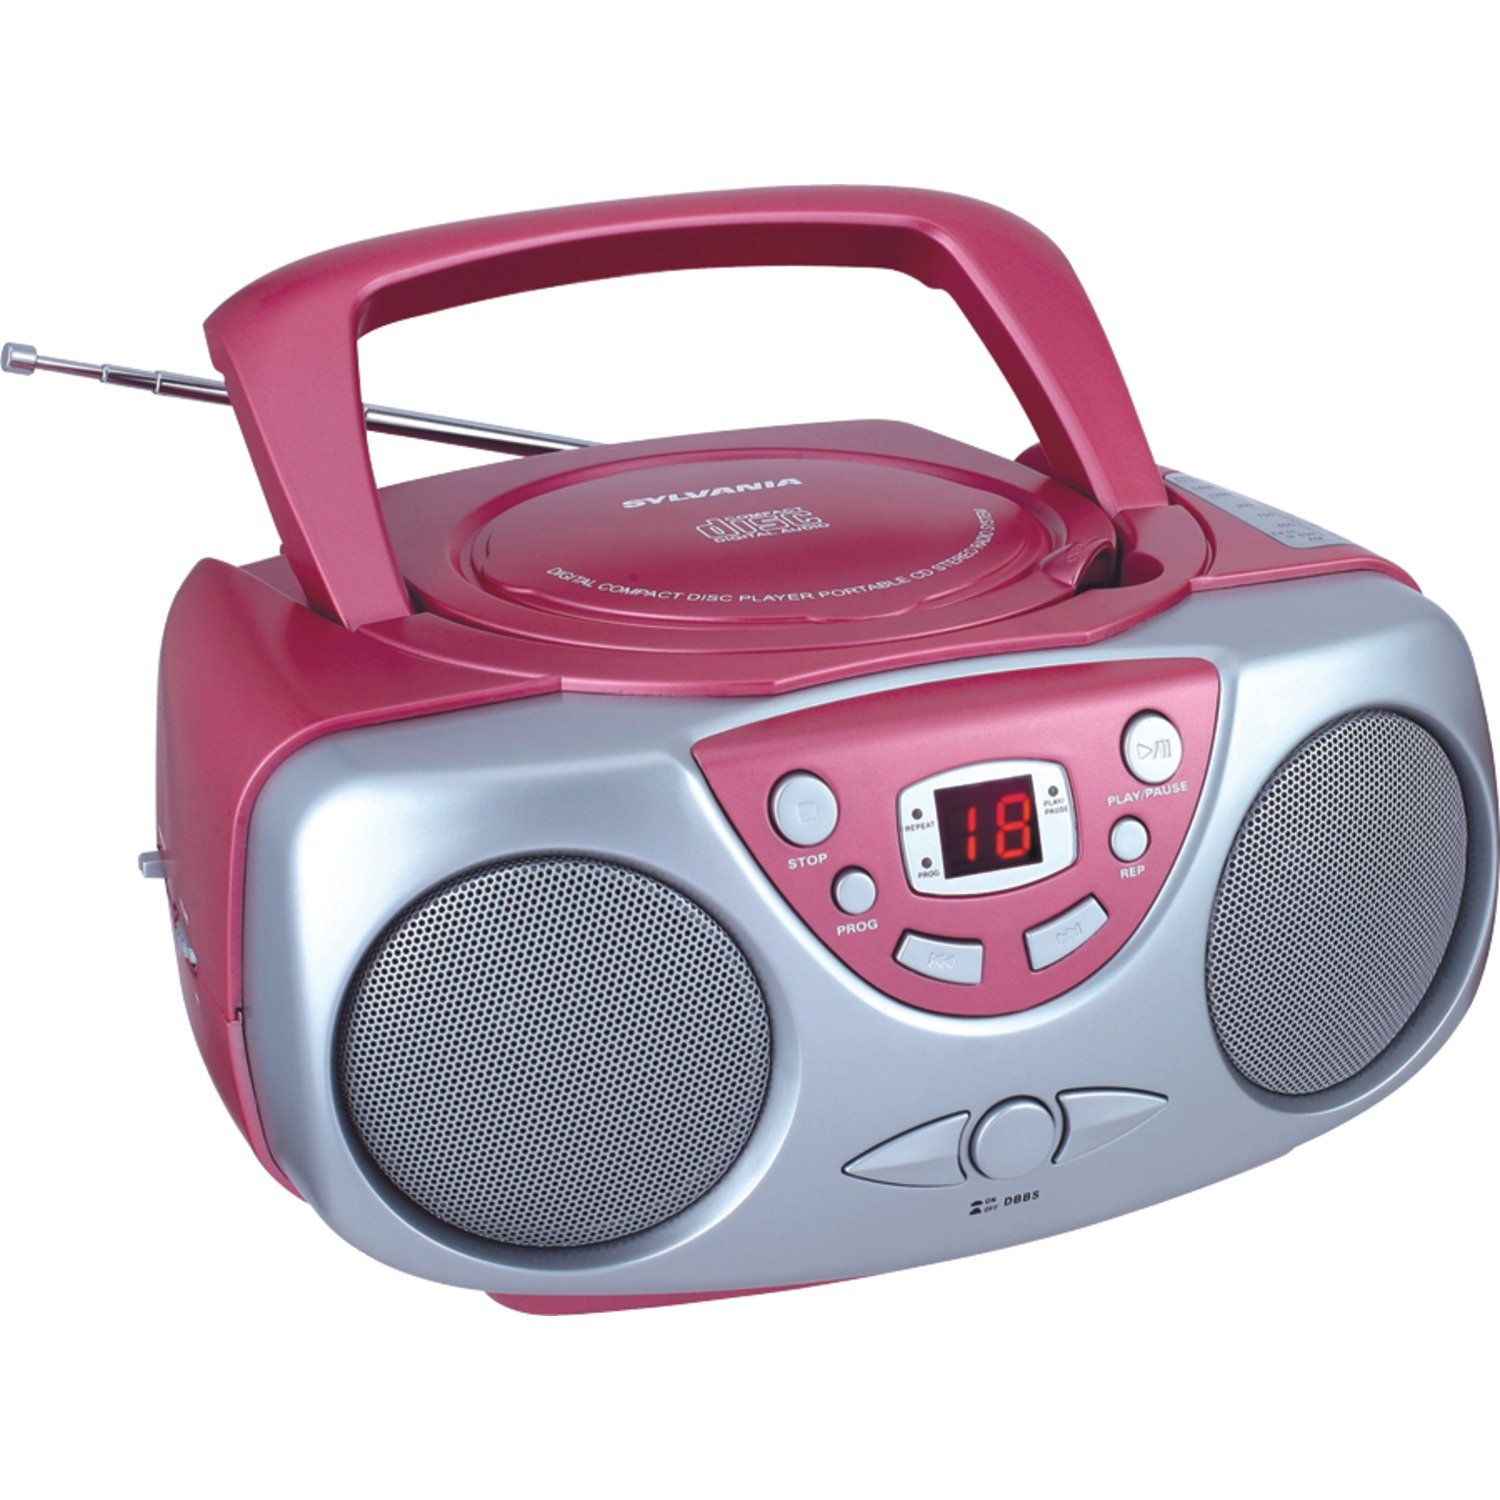 Sylvania SRCD243 Portable Player Boombox